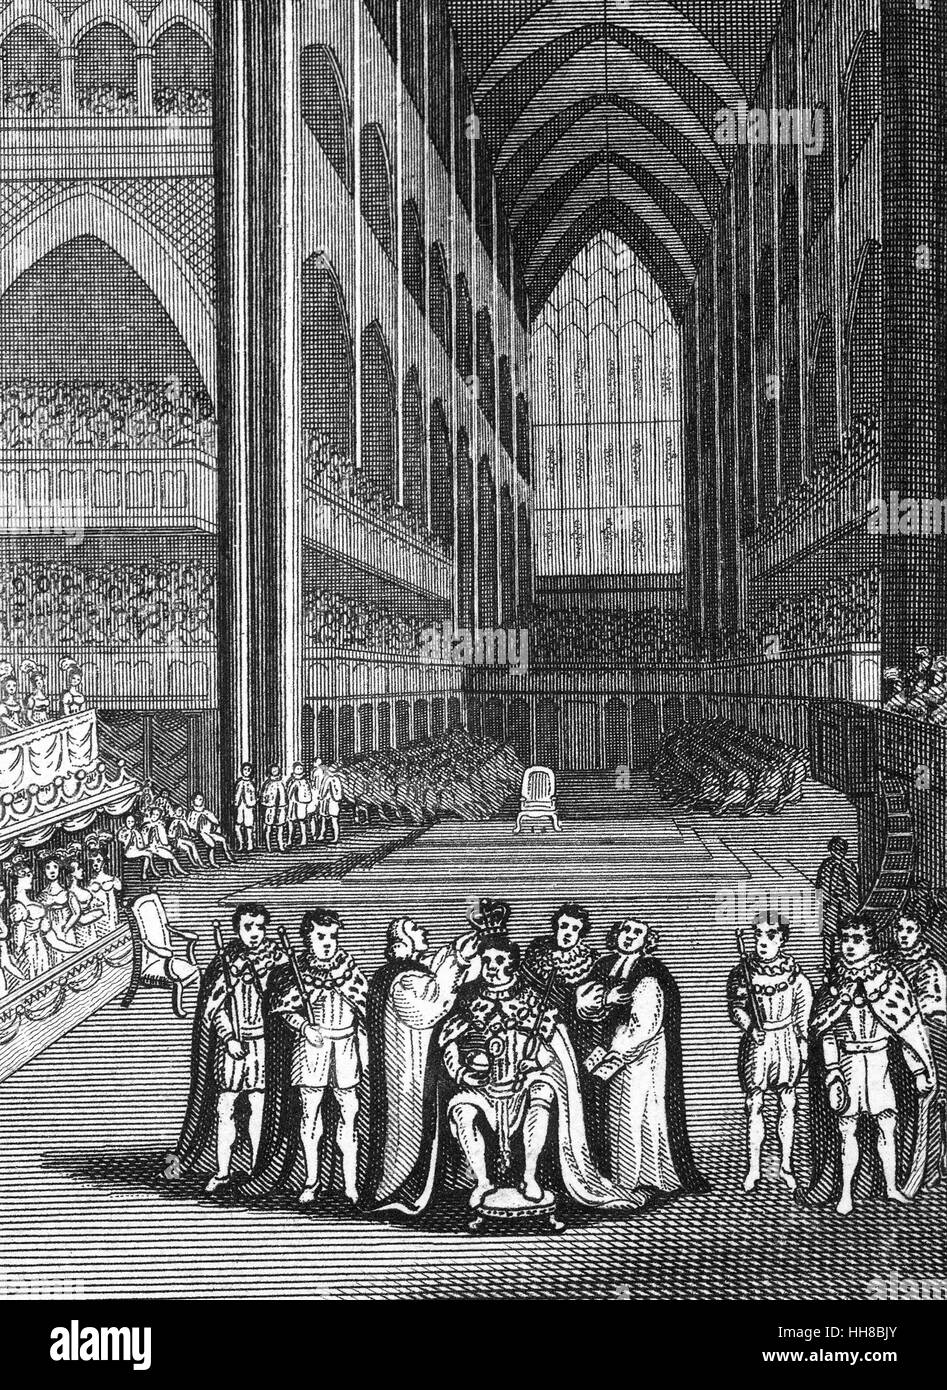 The coronation of King Henry VIII (1491 – 1547)  at Westminster Abbey on 21 April 1509. Henry was the second Tudor - Stock Image